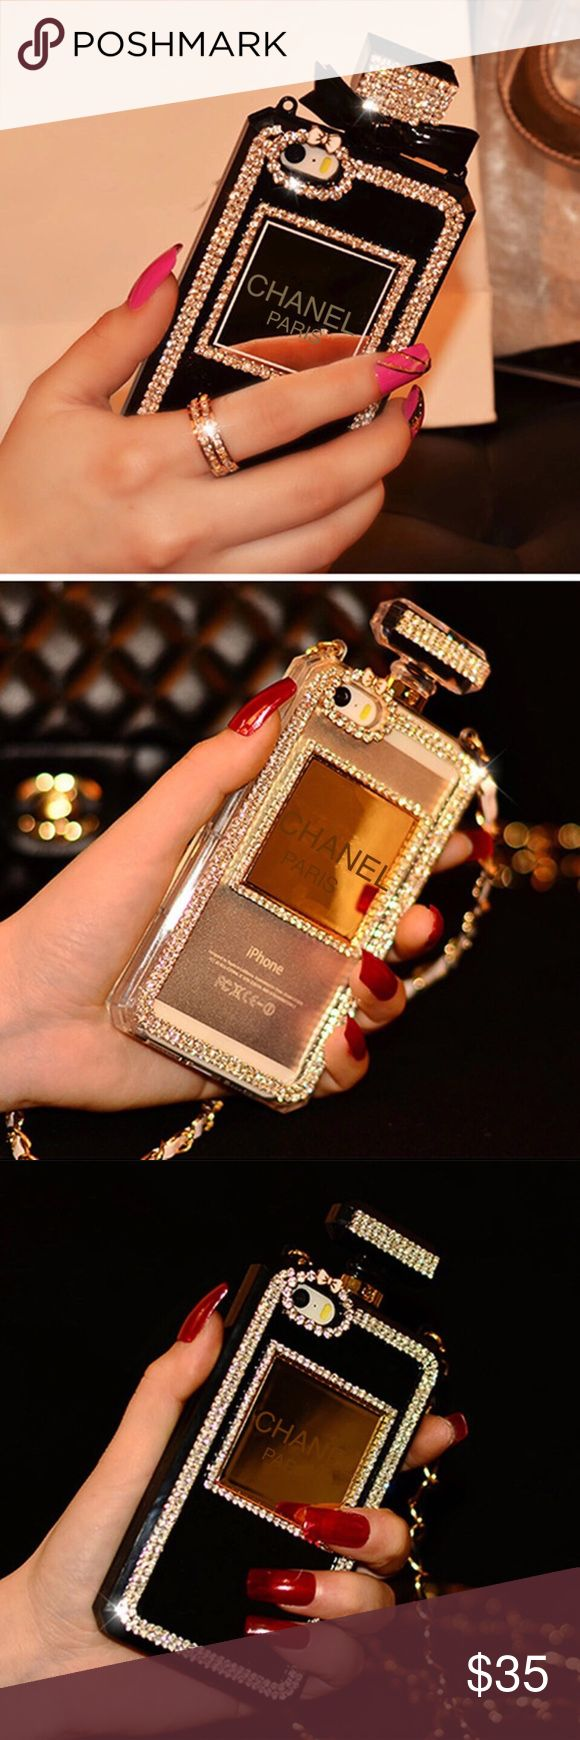 iPhone 6 and 7 Rhinestone Phone Case Brand new Chanel Paris Rhinestone perfume bottle iPhone 6 and 7 phone case. Choose from white or black. Detachable chain. No bow attached at top. Fits both iPhone 6 and 7. Price Firm. RIIBS Accessories Phone Cases